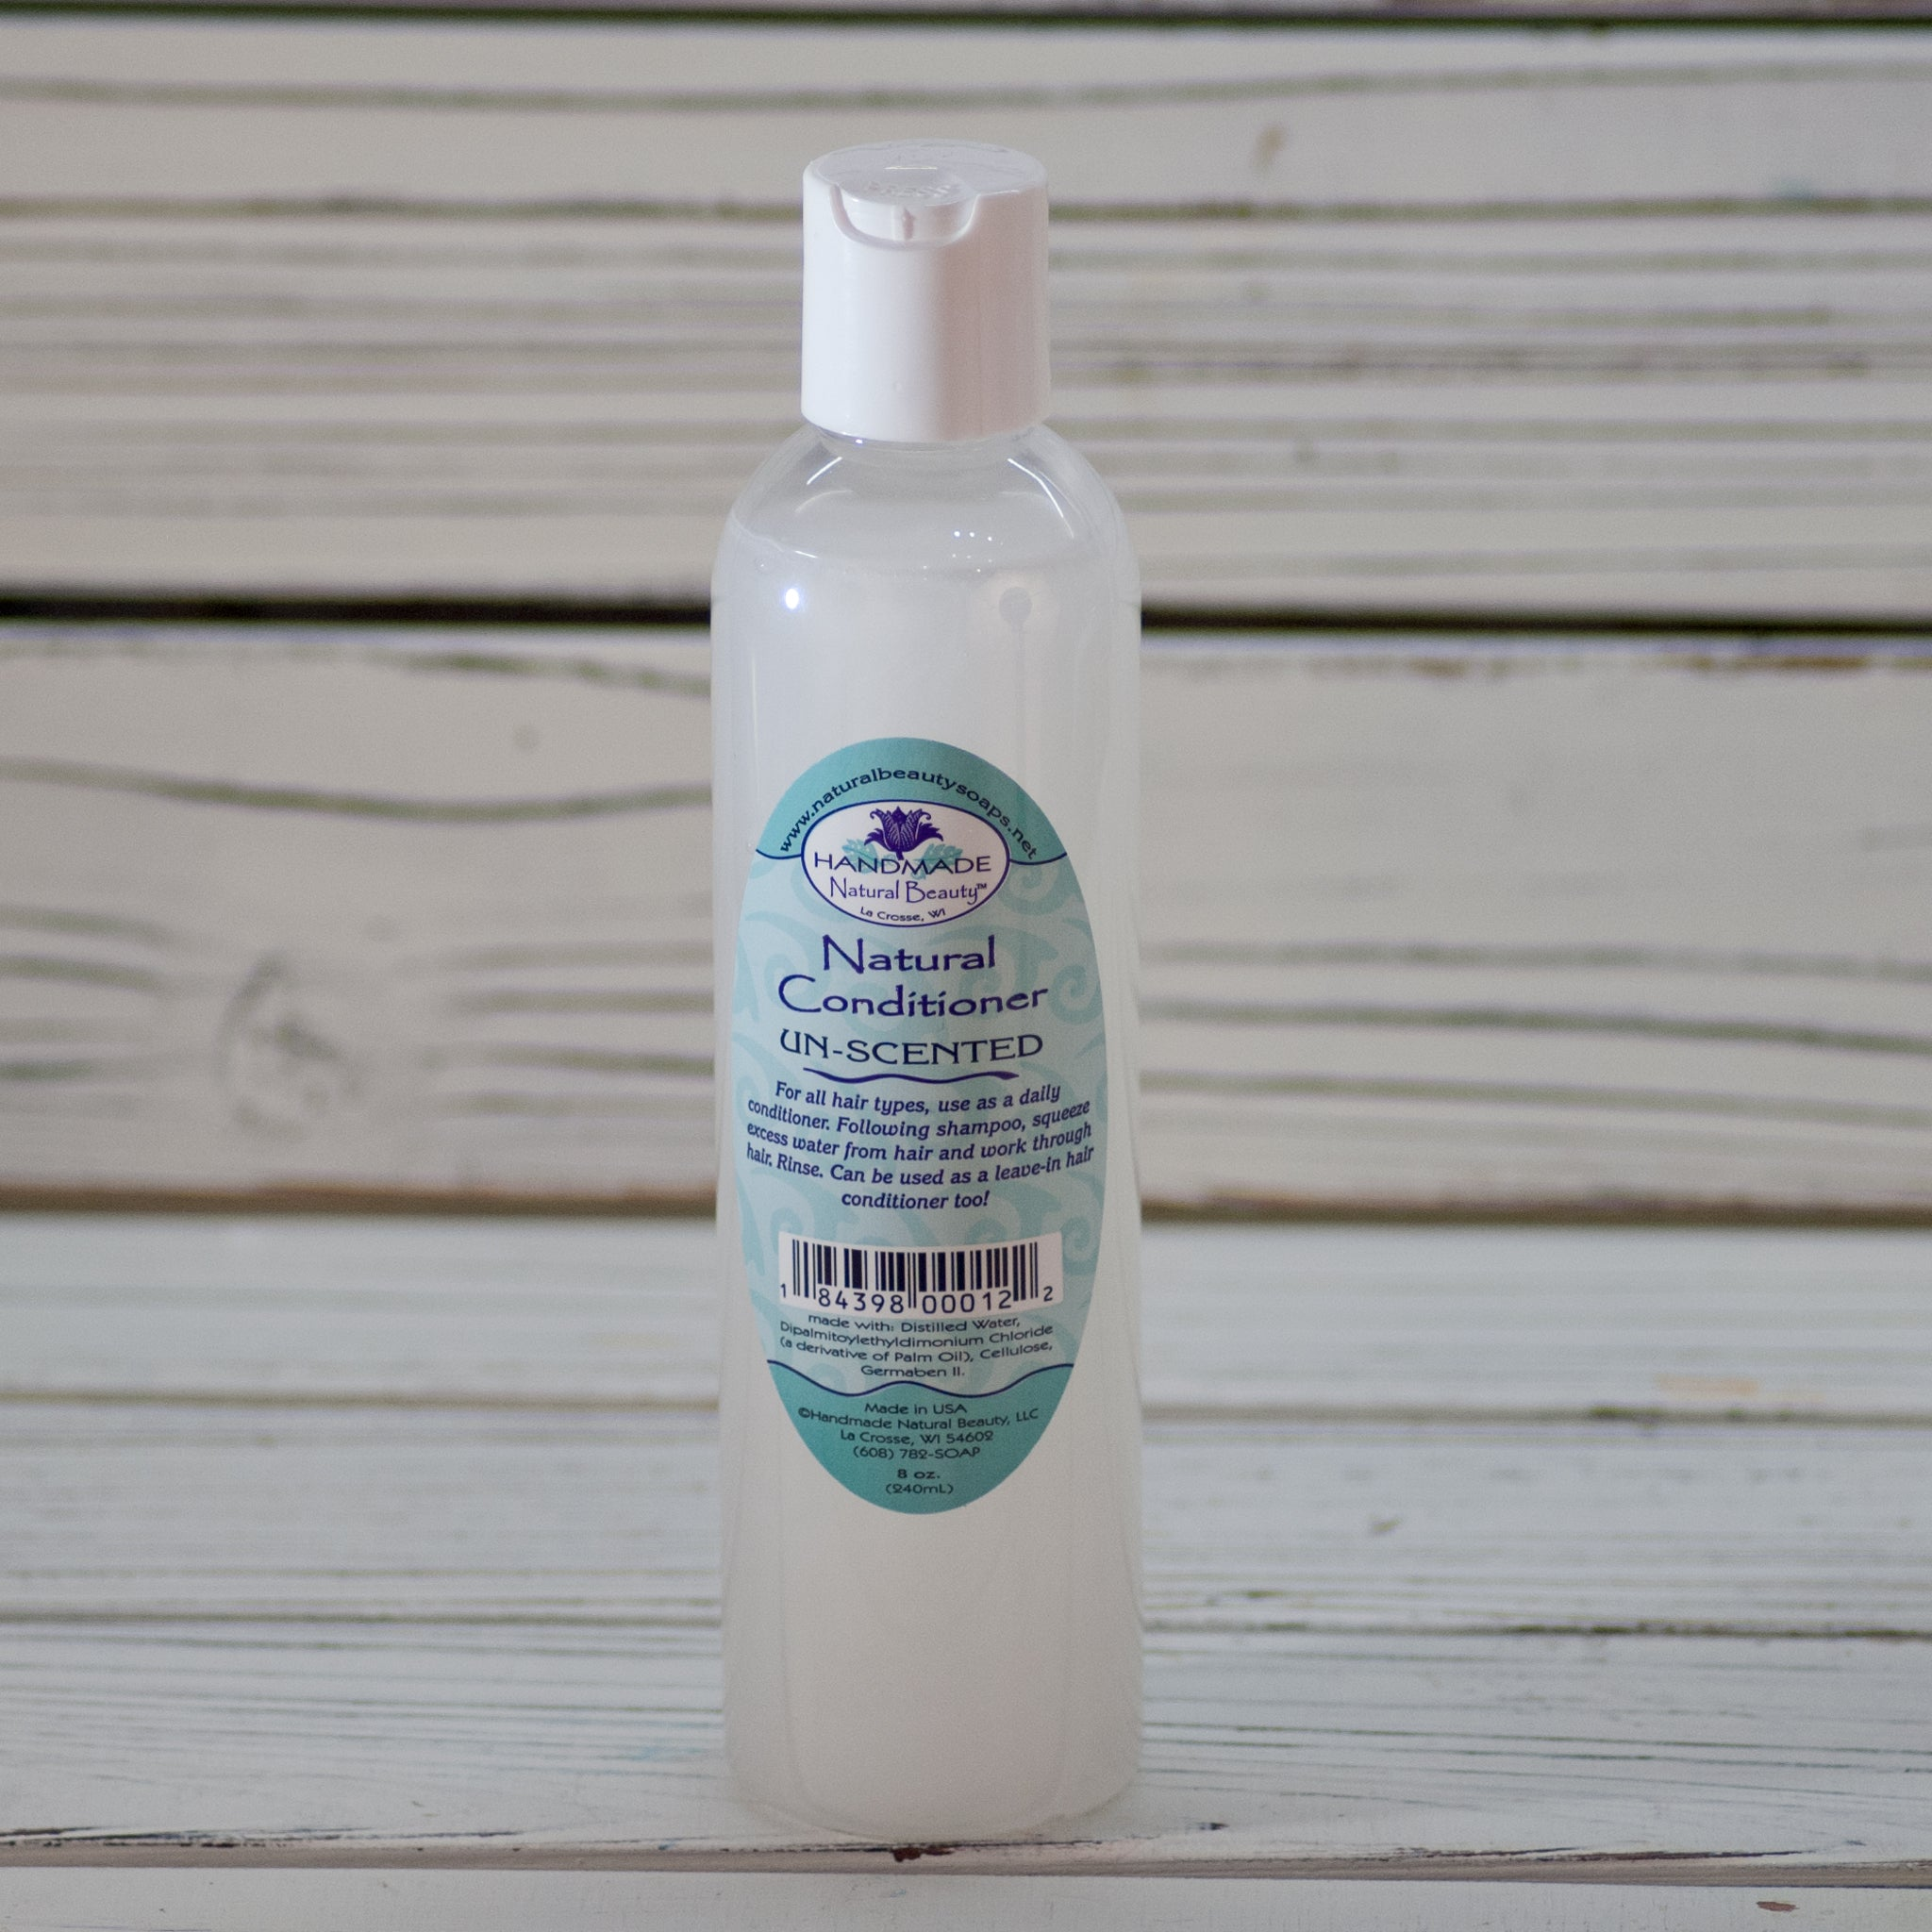 Natural Hair Care | Non-Scented Conditioner